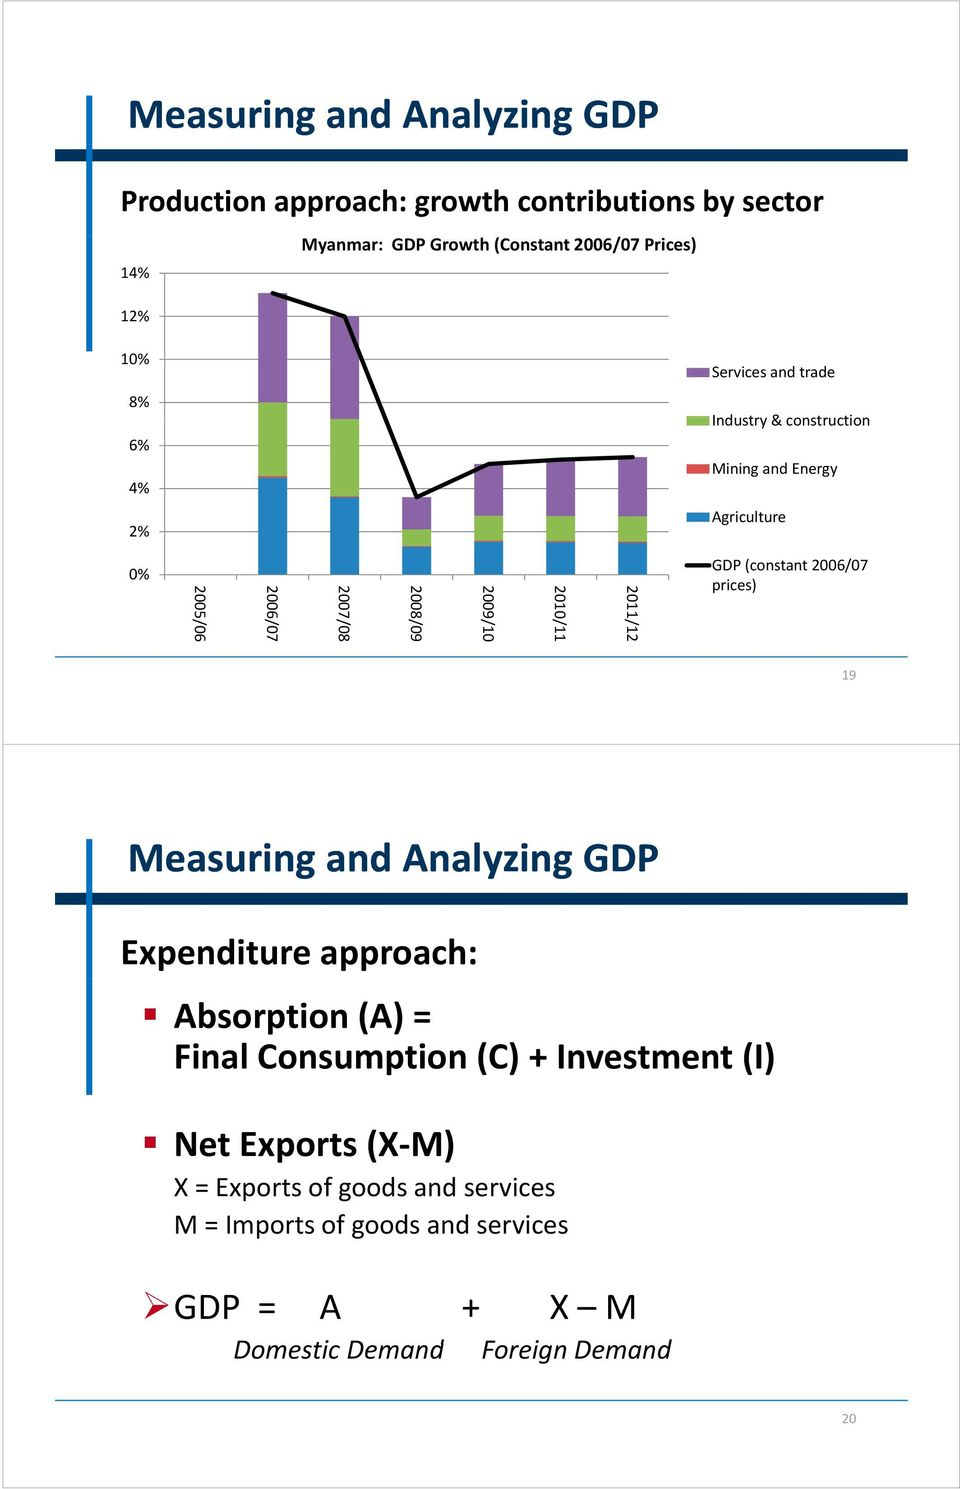 010/11 20 011/12 GDP (constant 2006/07 prices) 19 Measuring and Analyzing GDP Expenditure approach: Absorption (A) = Final Consumption (C) +